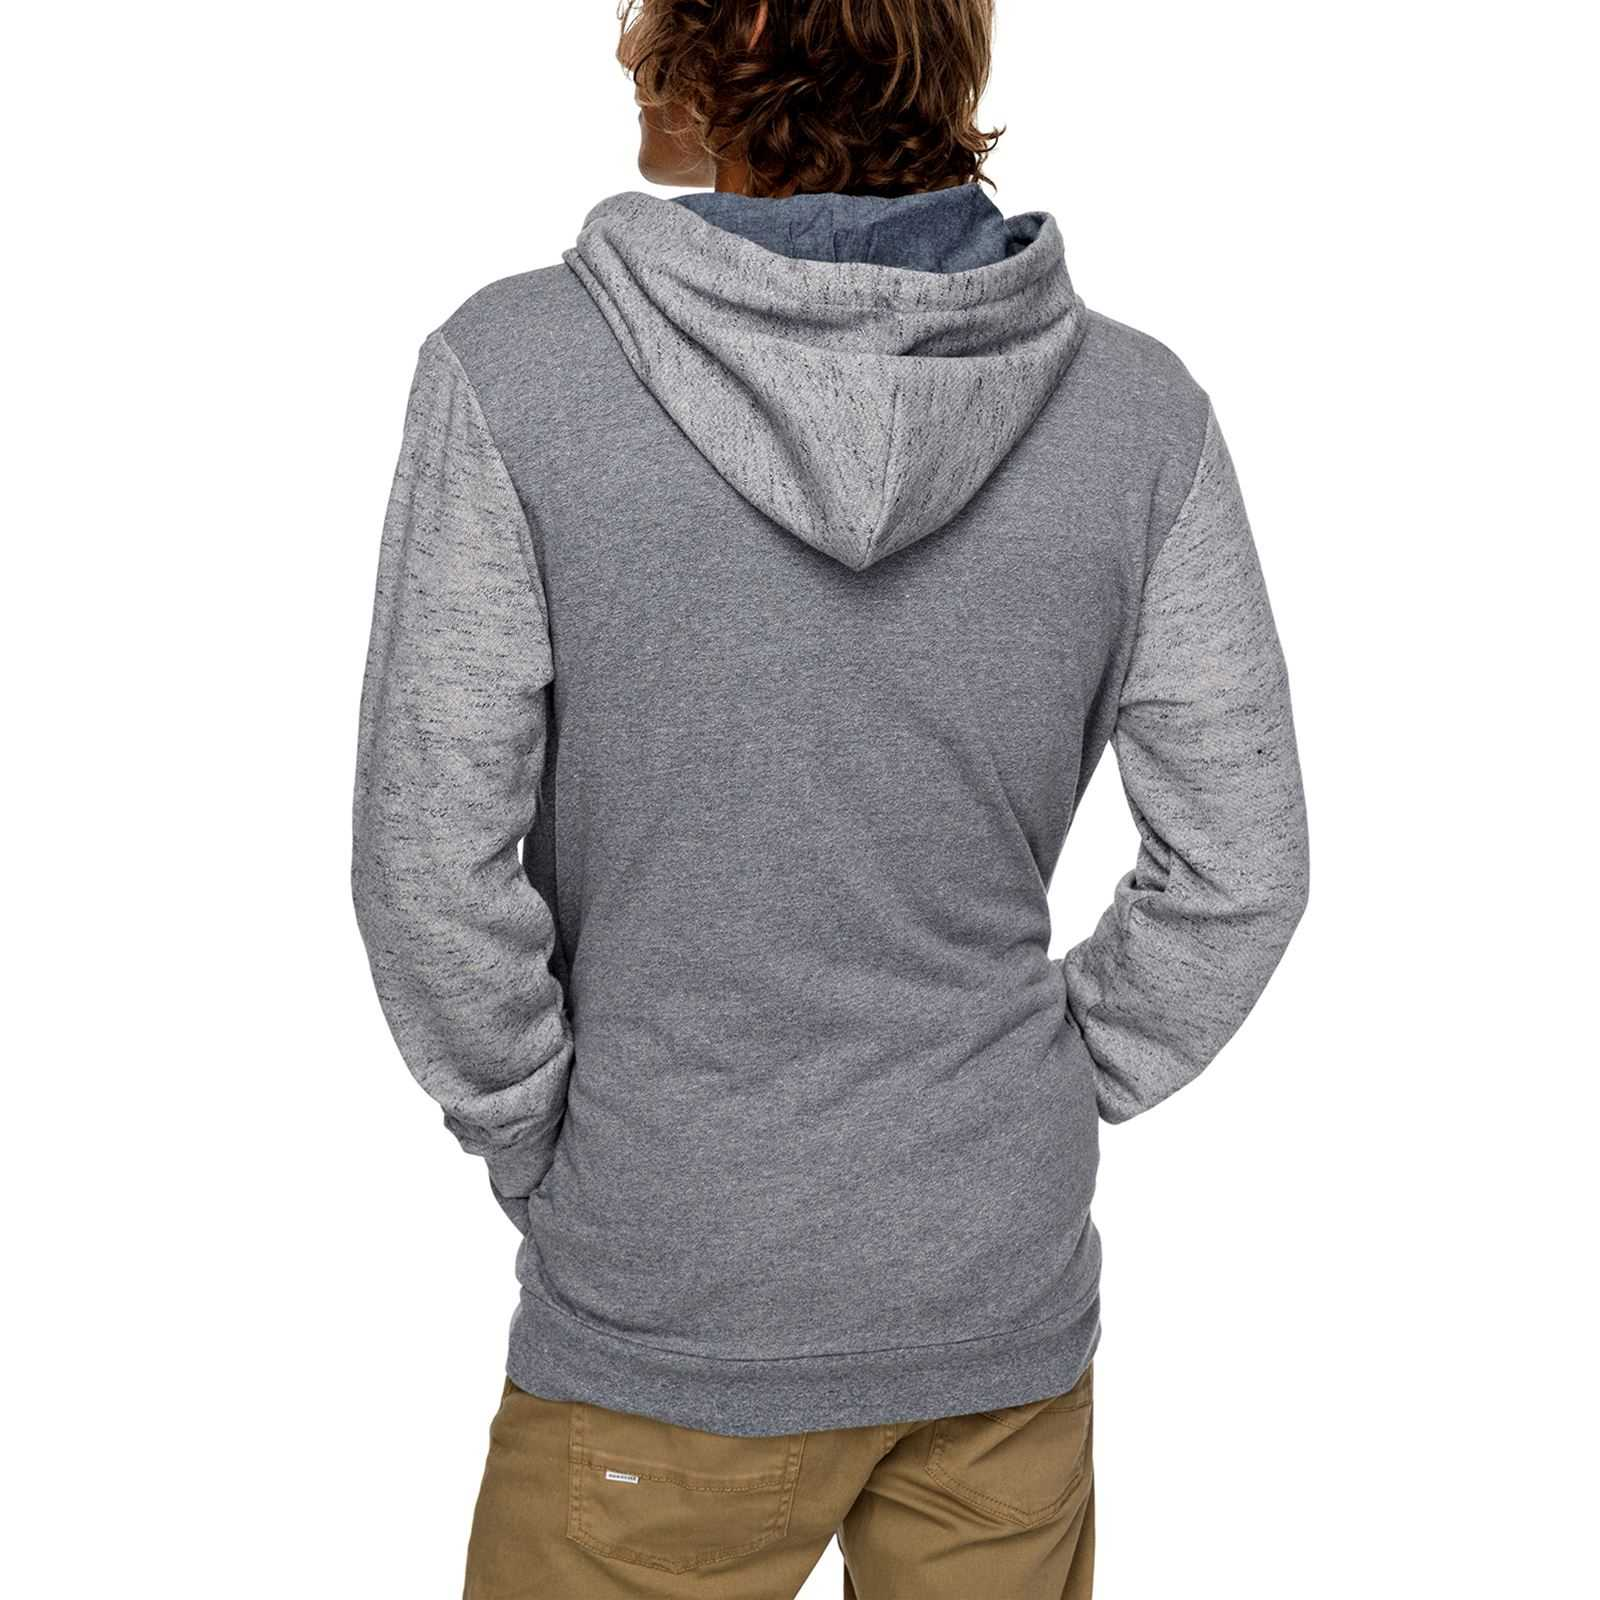 Shd Homme 2Sweat V Fleece Capuche Quiksilver Bleu Top a kiOPuXZ